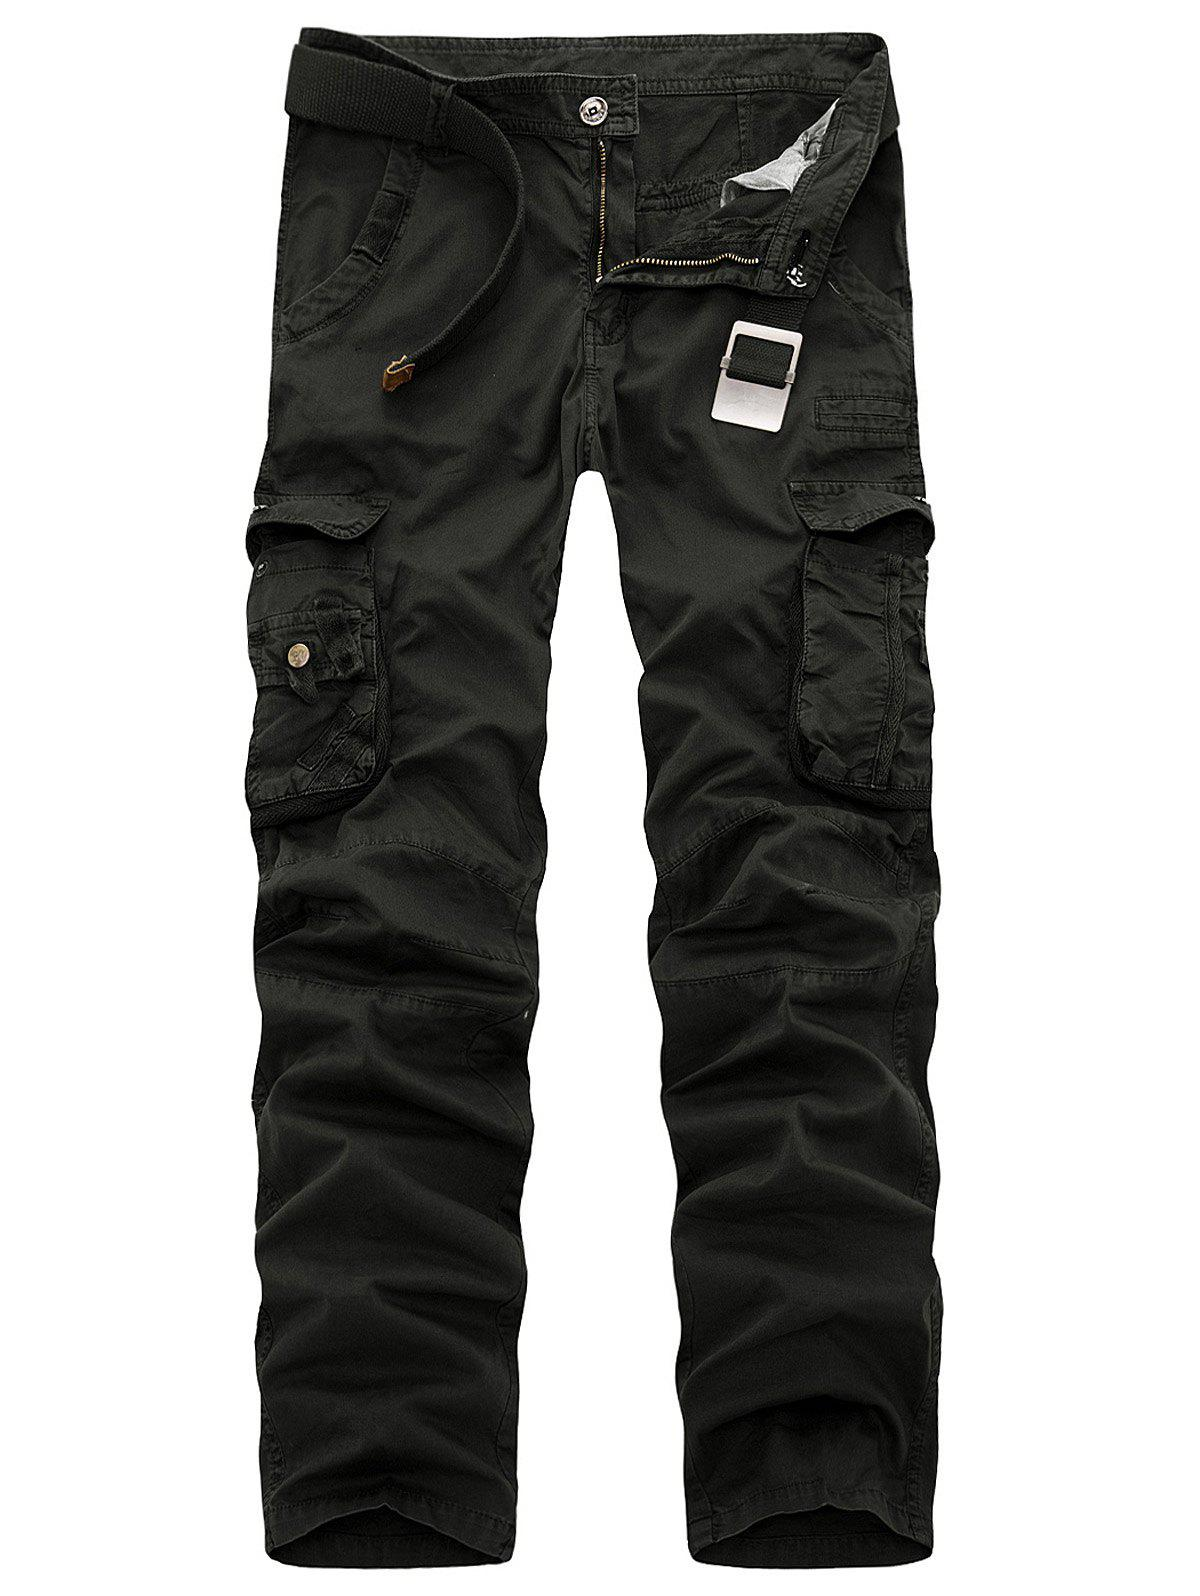 Multi Pockets Zipper Fly Slimming Cargo Pants - BLACK 38